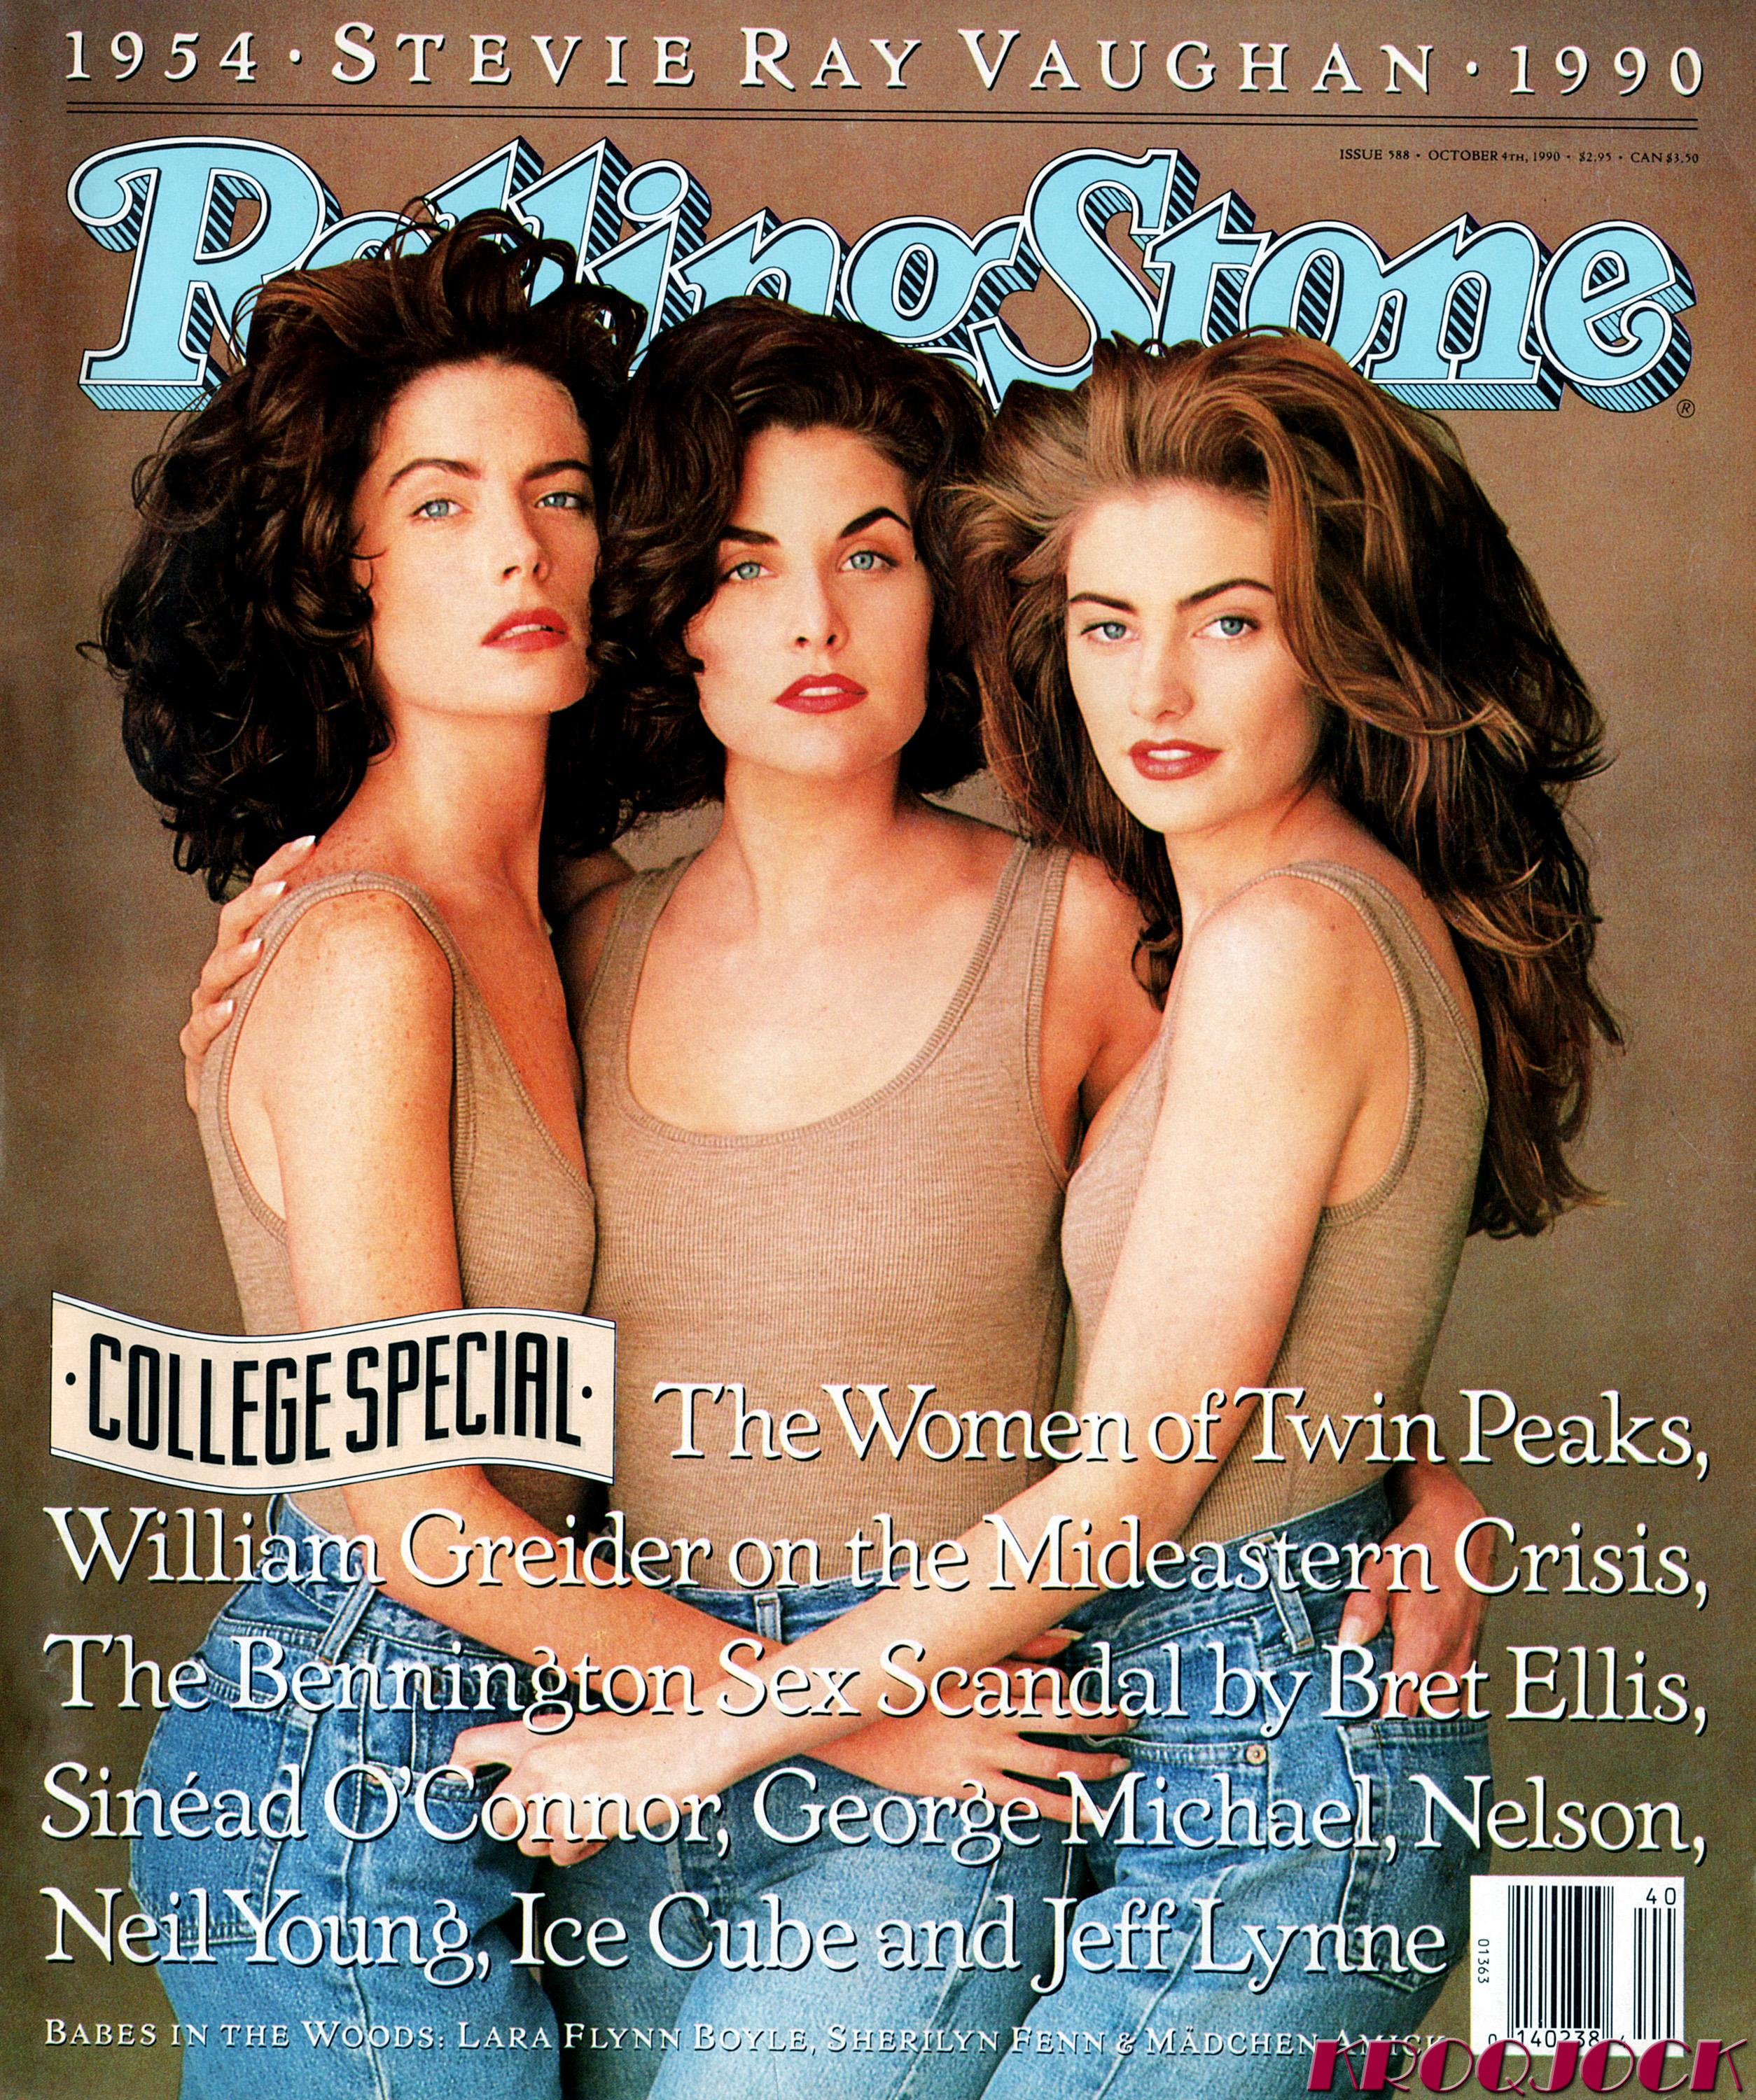 twin_peaks-rolling_stone-october_1990-scanned_by_kroqjock-hq_-1